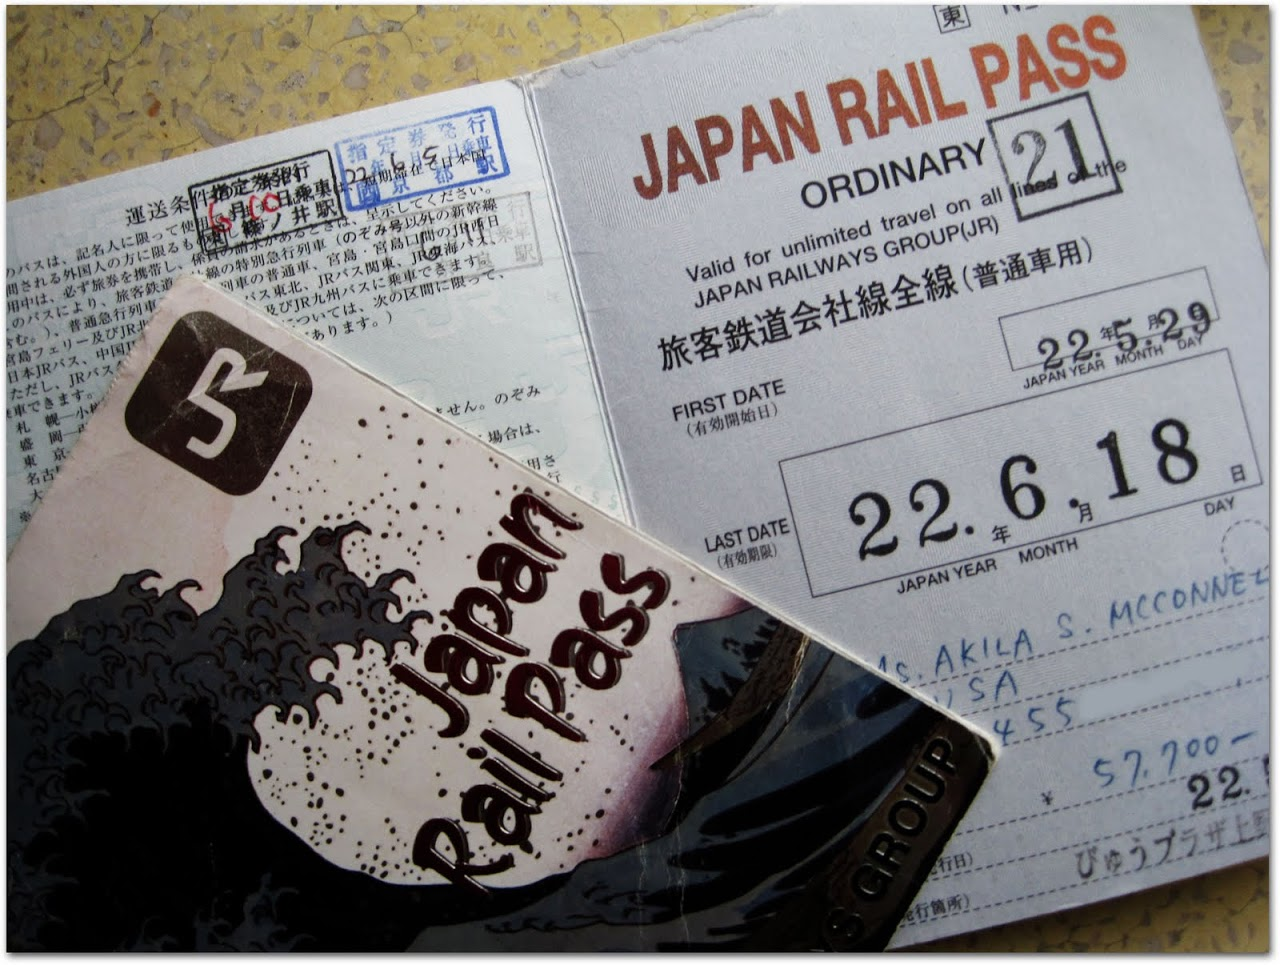 Travel Japan Rail Pass Cara Turis Menyiasati Transportasi Mahal Di Jrpass Ordinary Dewasa 7hari Pic1